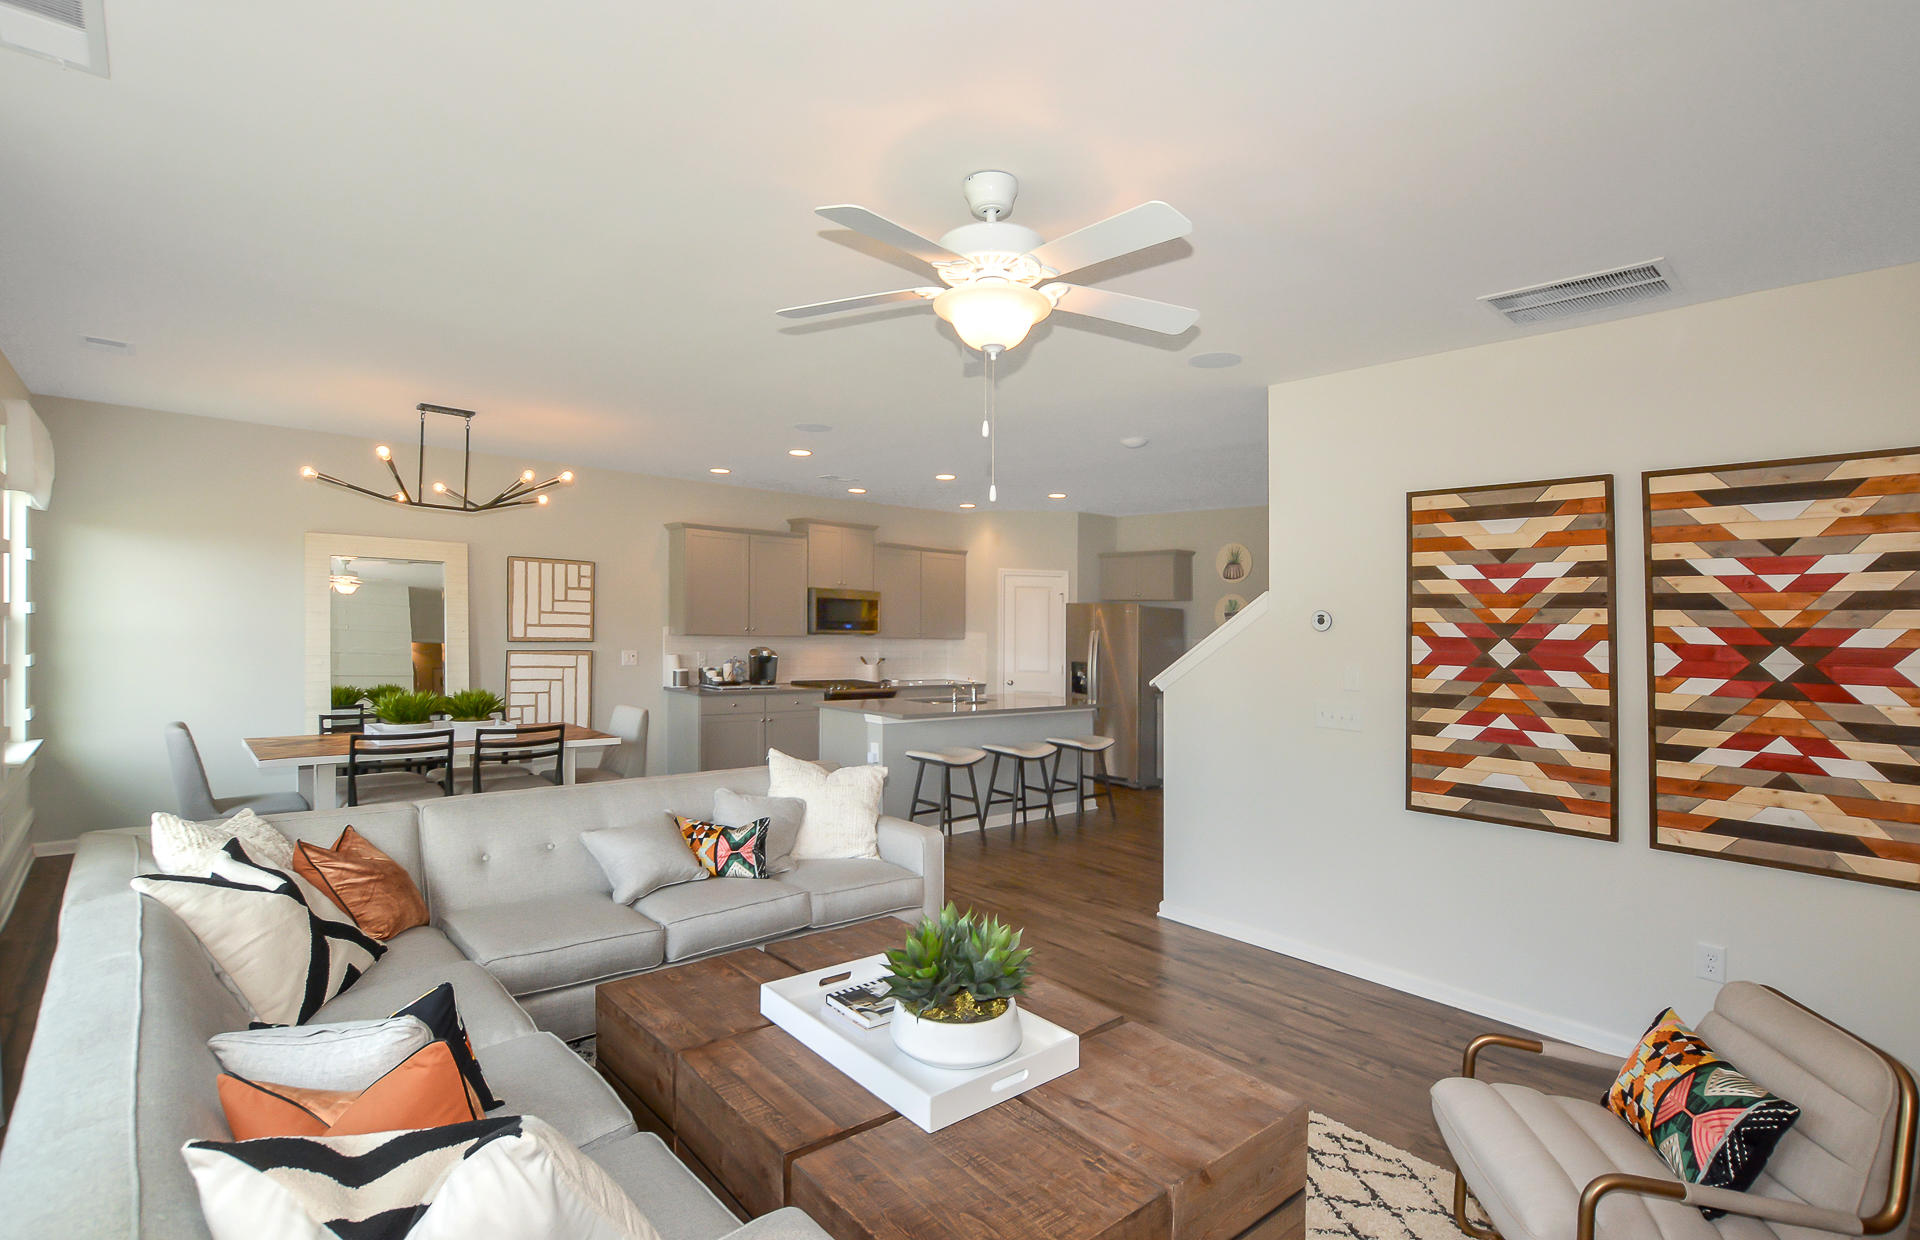 North Cove by Pulte Homes image 2